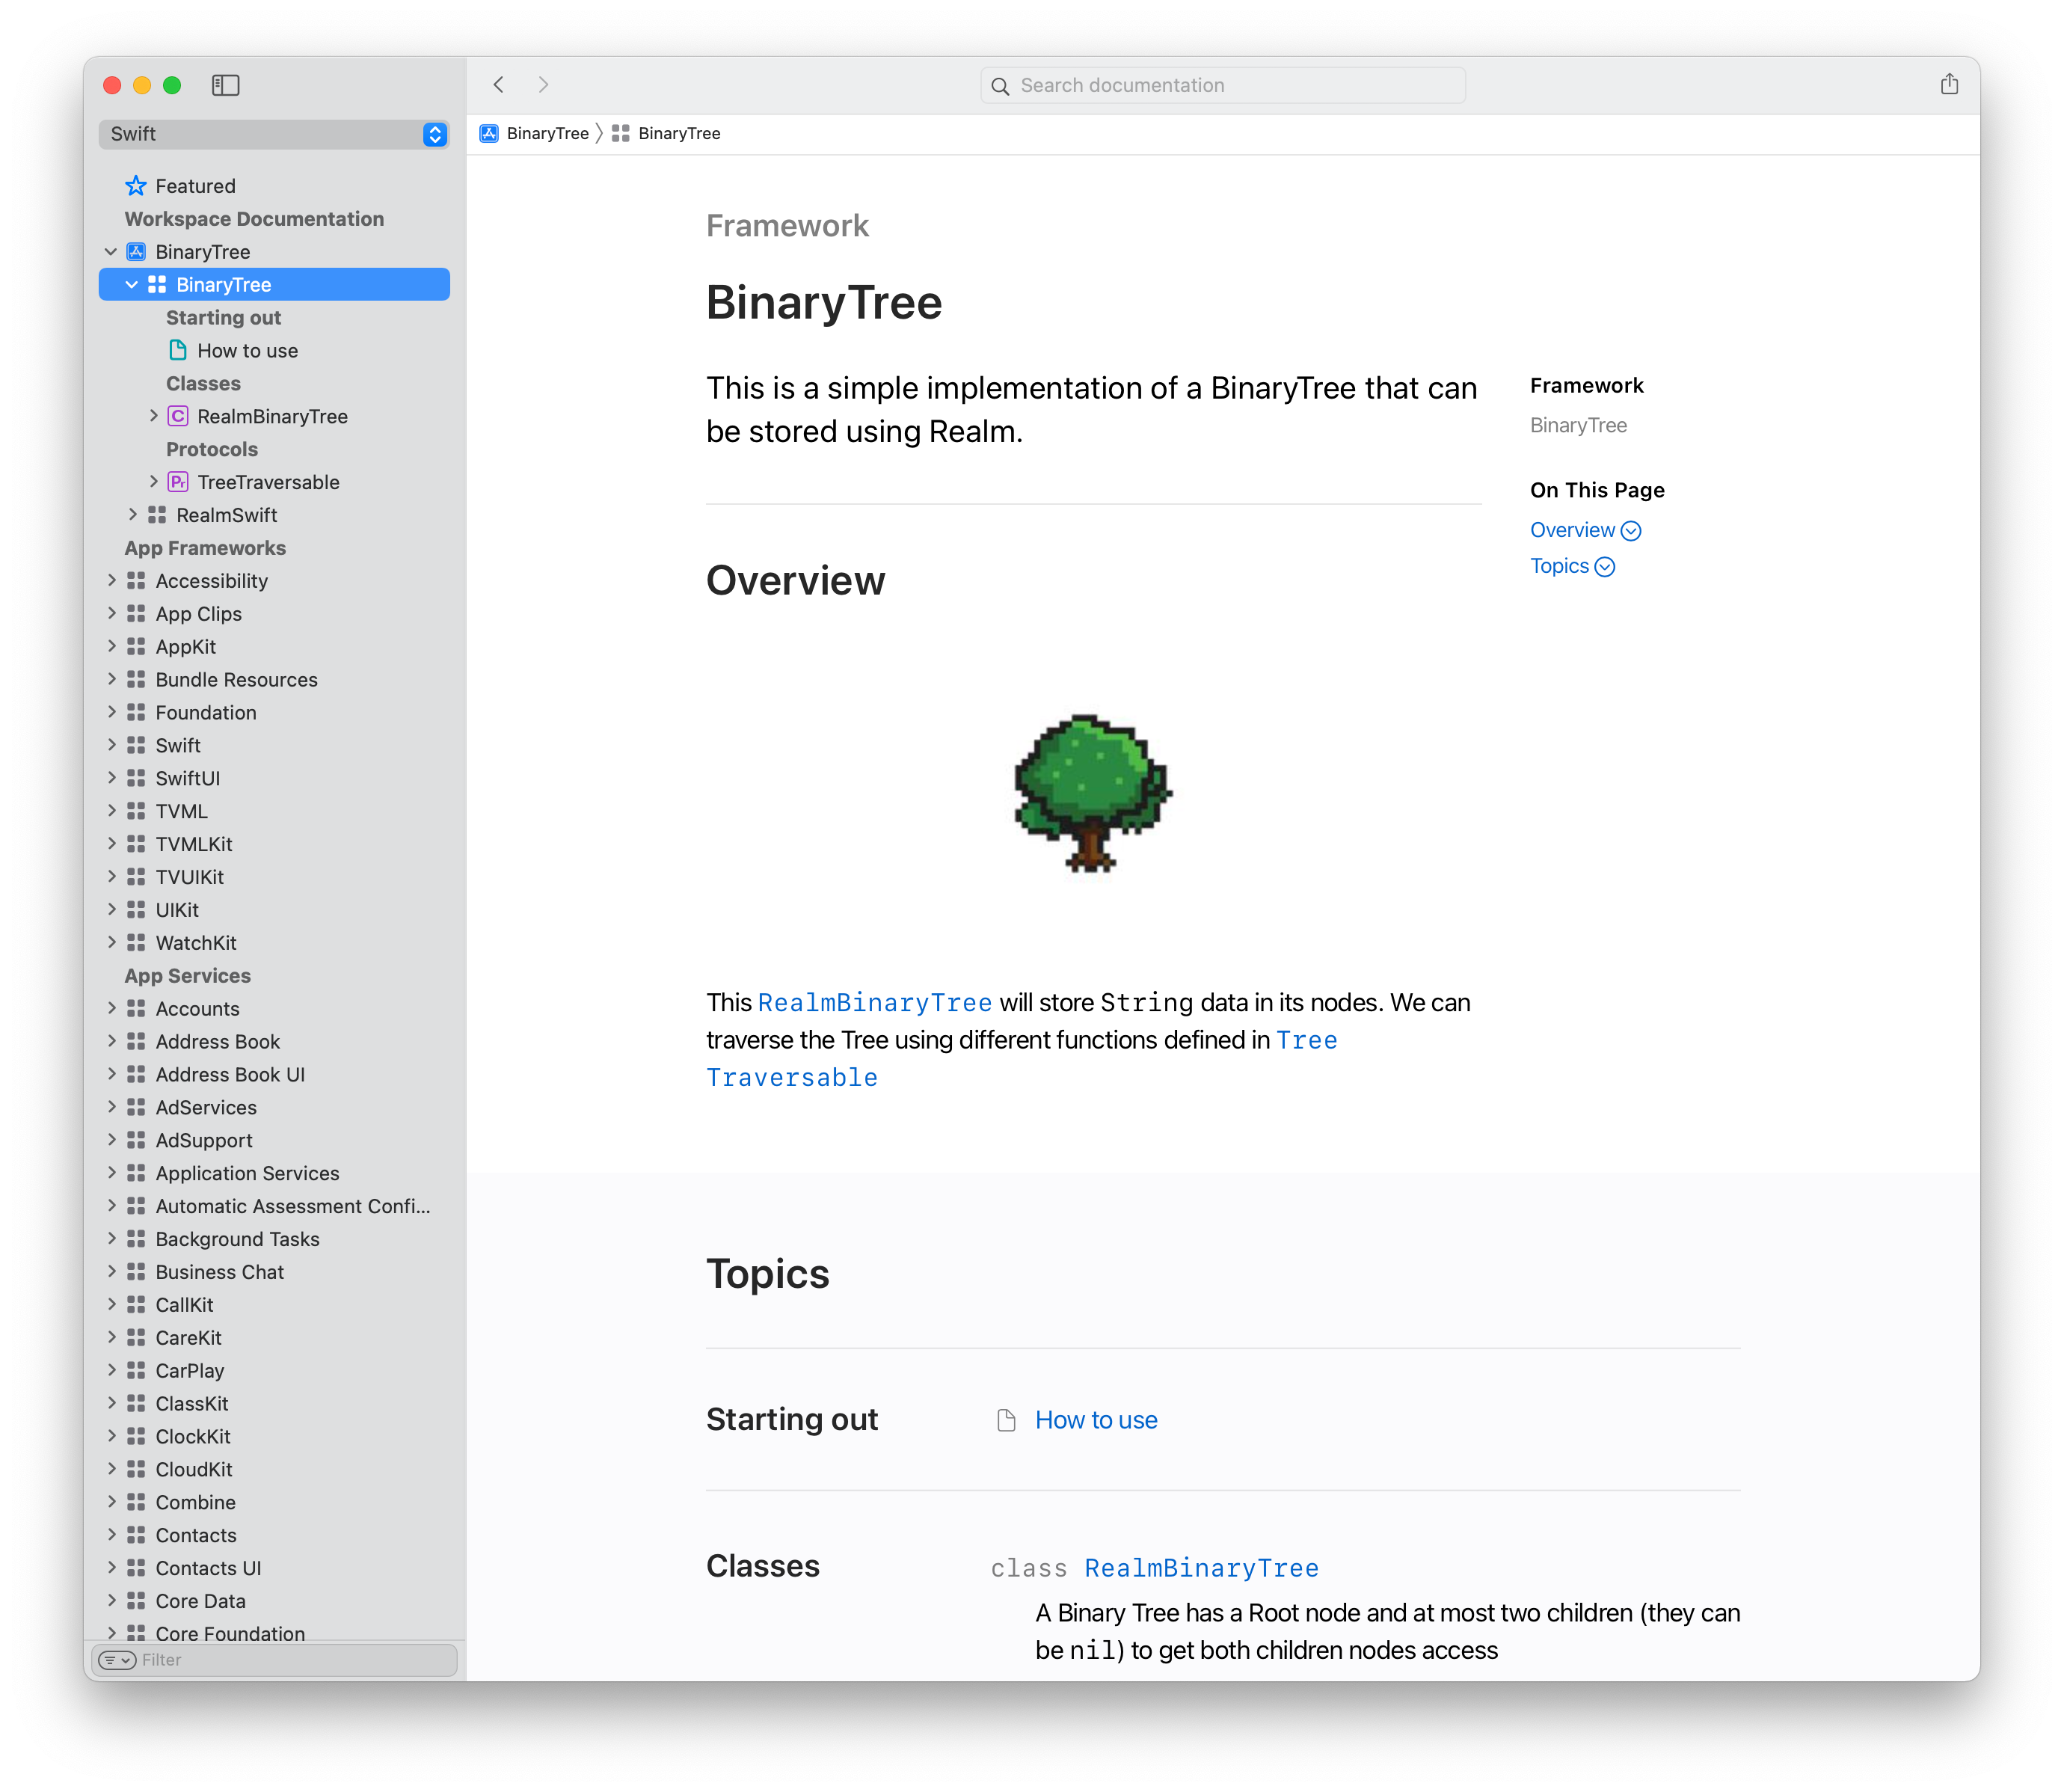 Documentation Browser showing the BinaryTree main page with an image of a tree, in pixel art style